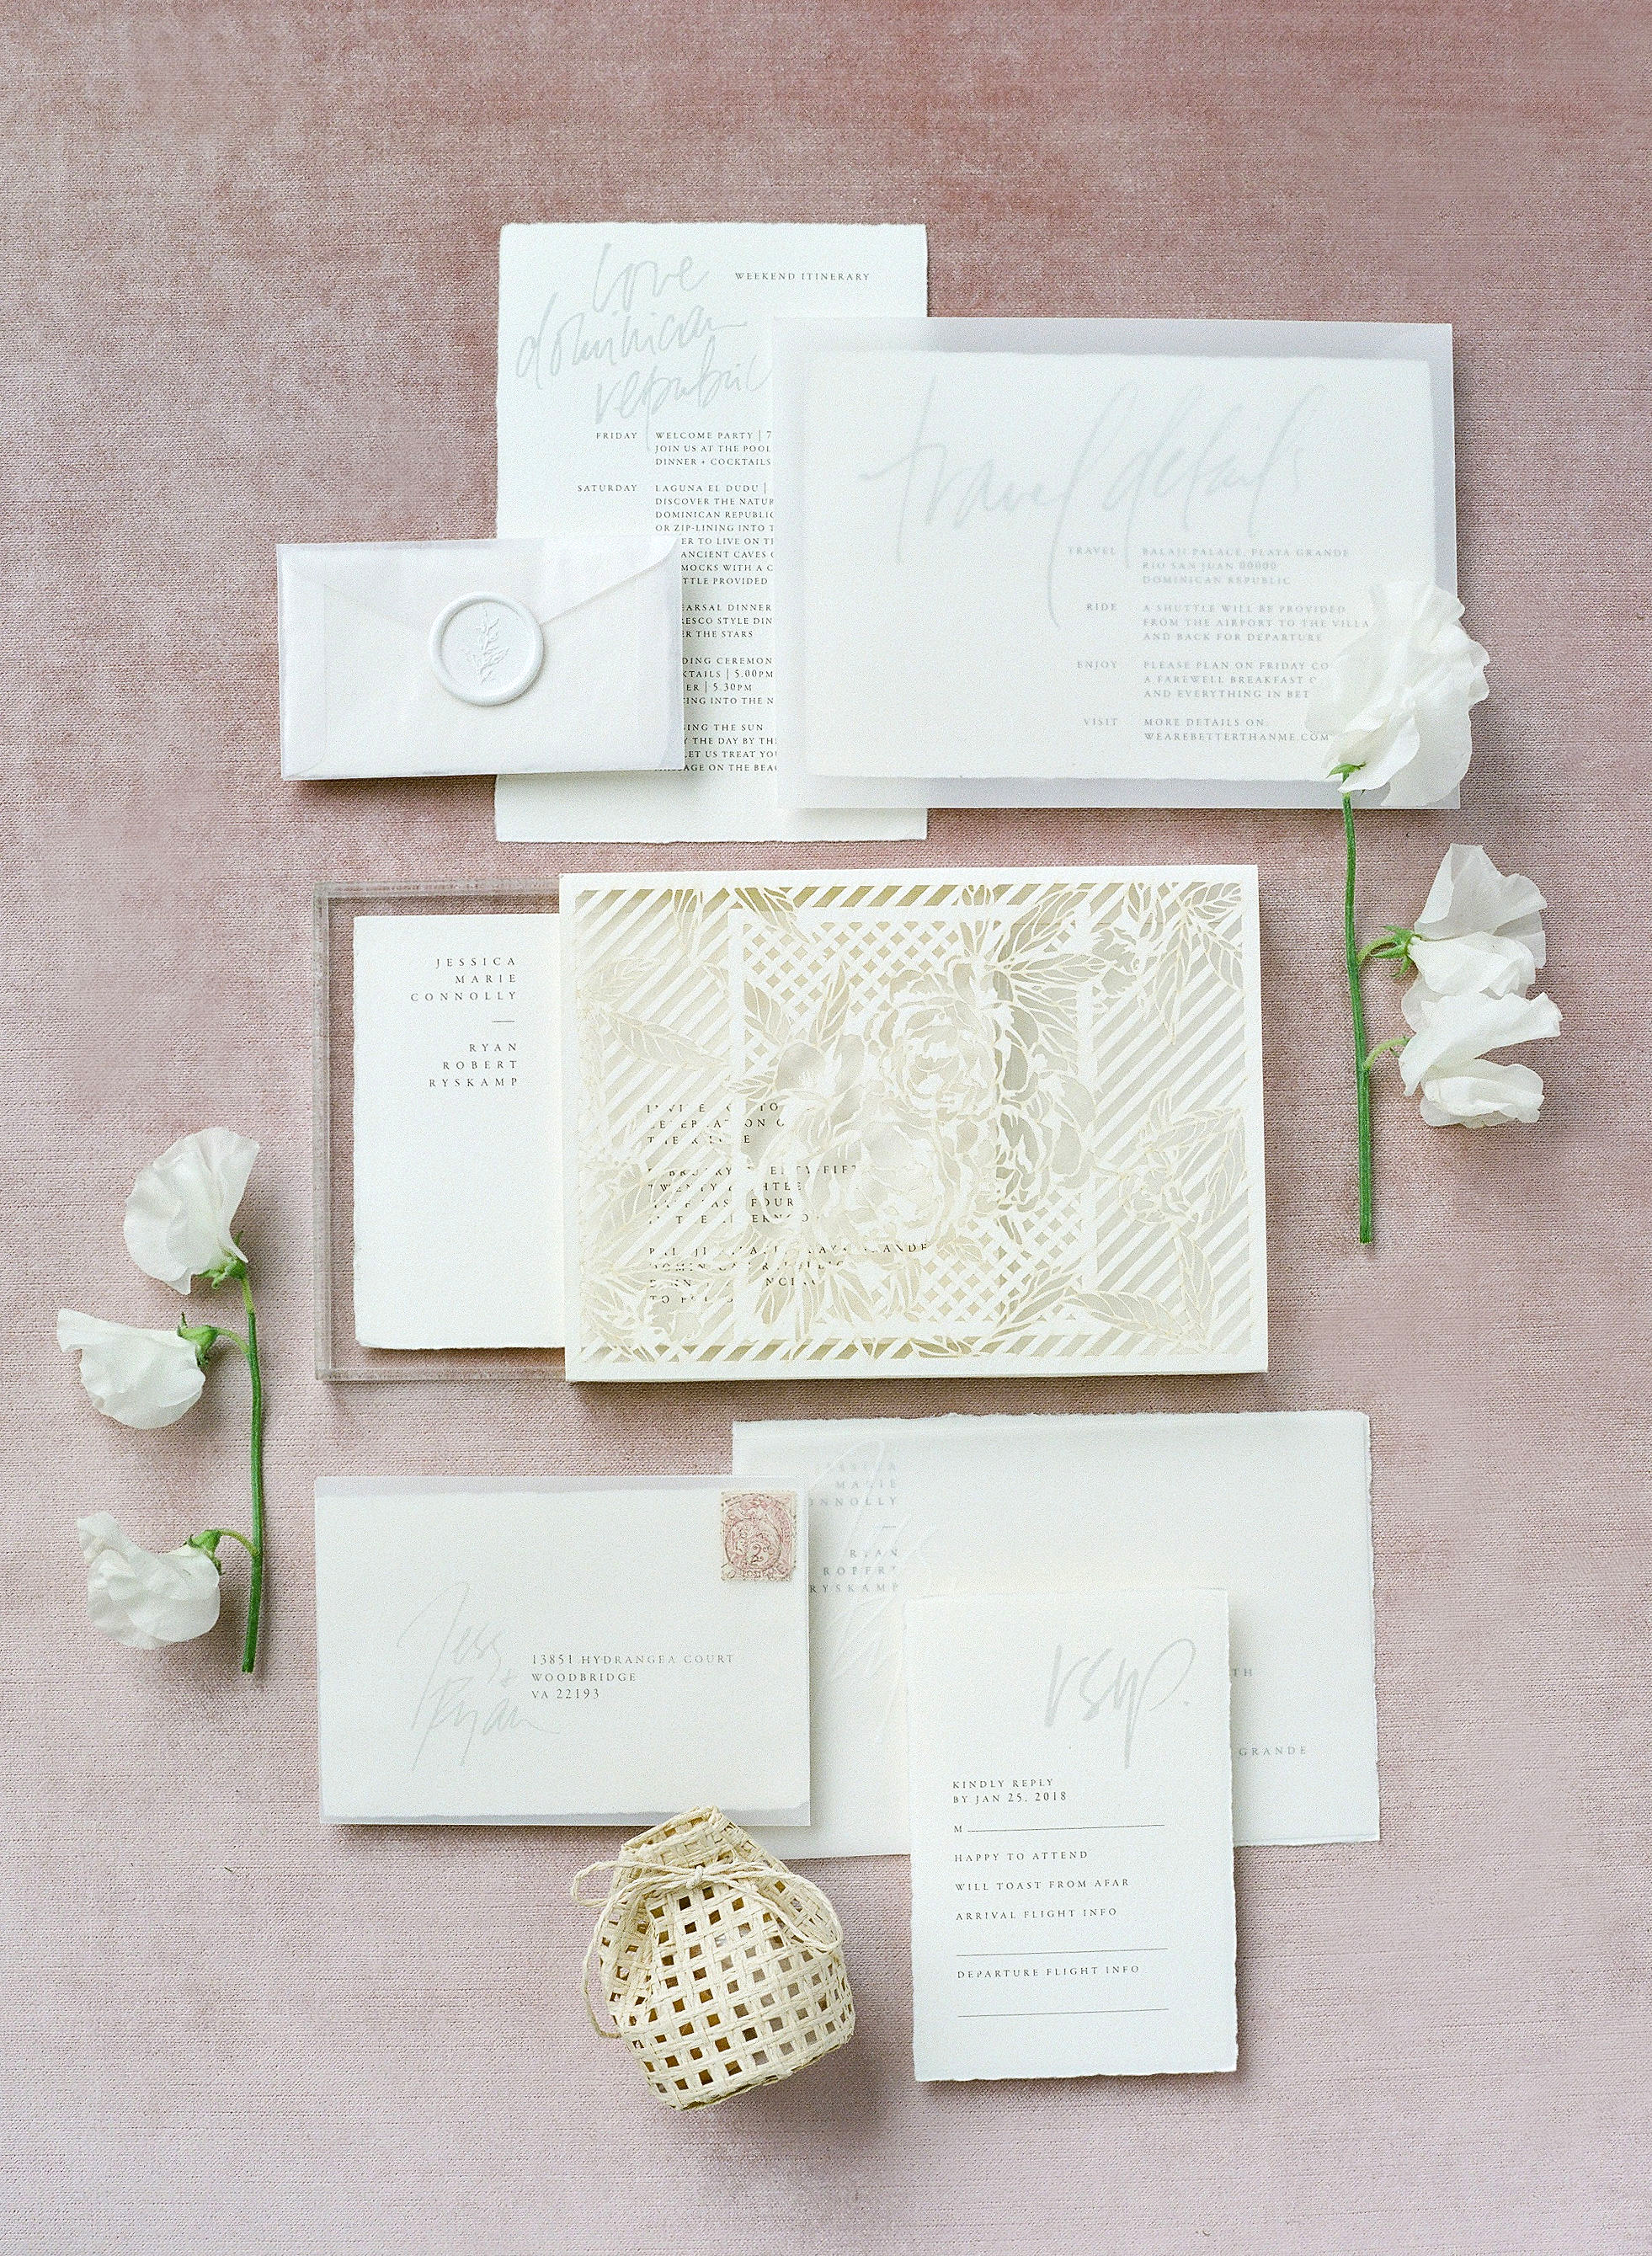 jessica ryan wedding invitations